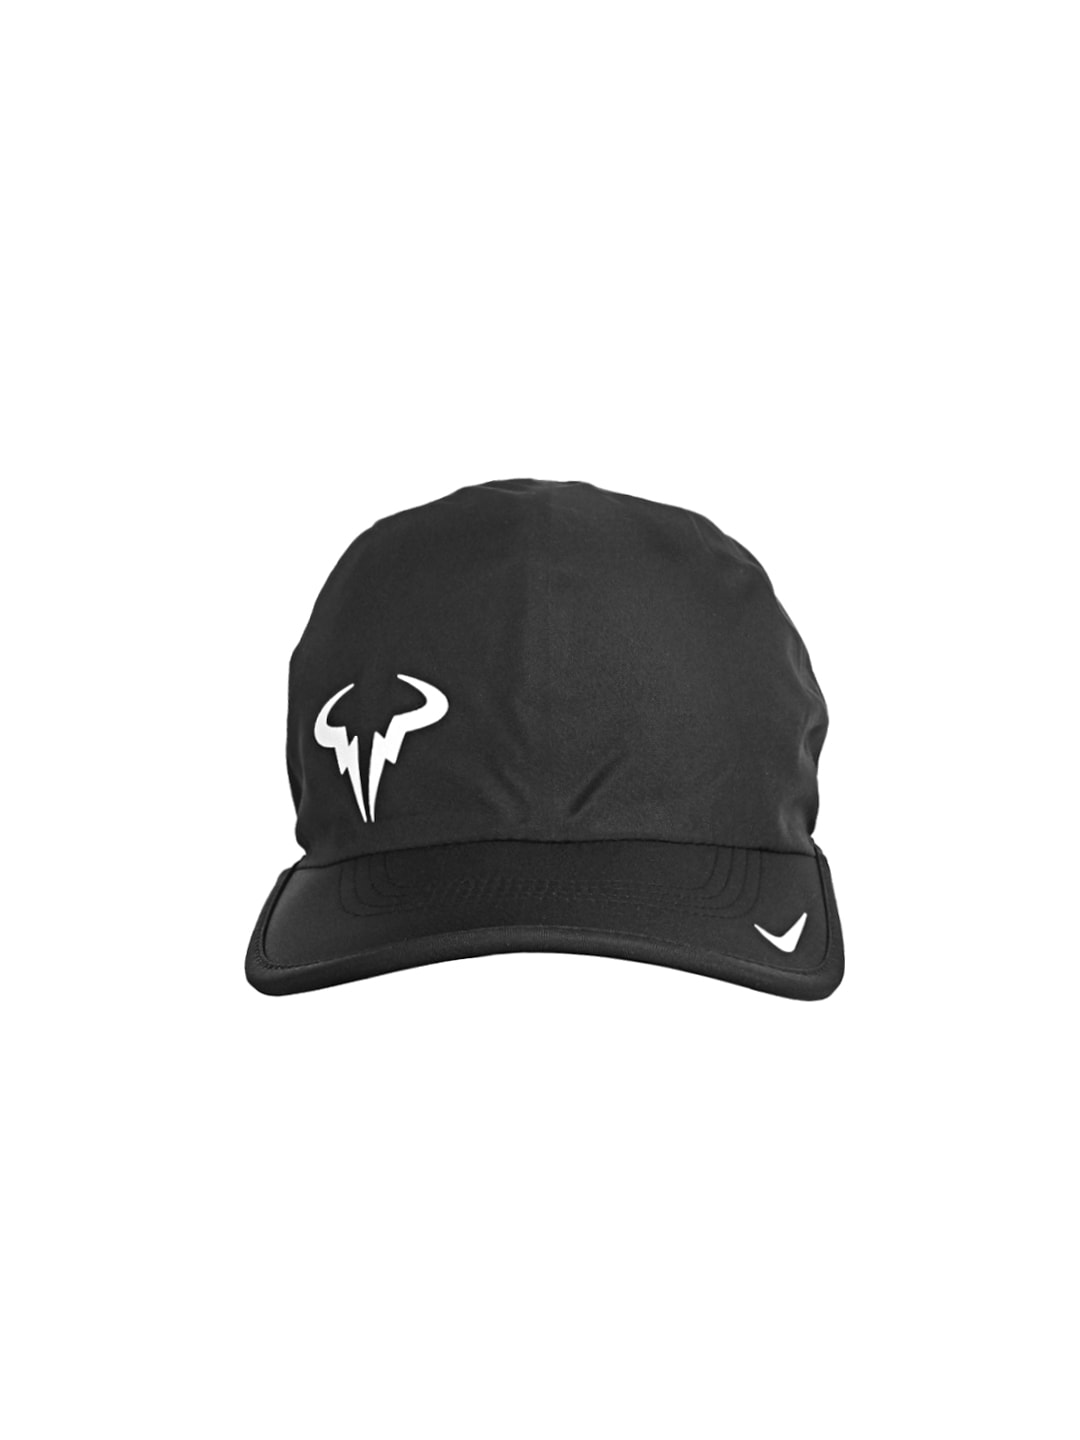 7c5c93899 Nike 613966-010 Unisex Black Rafa Bull Logo Cap - Best Price in ...